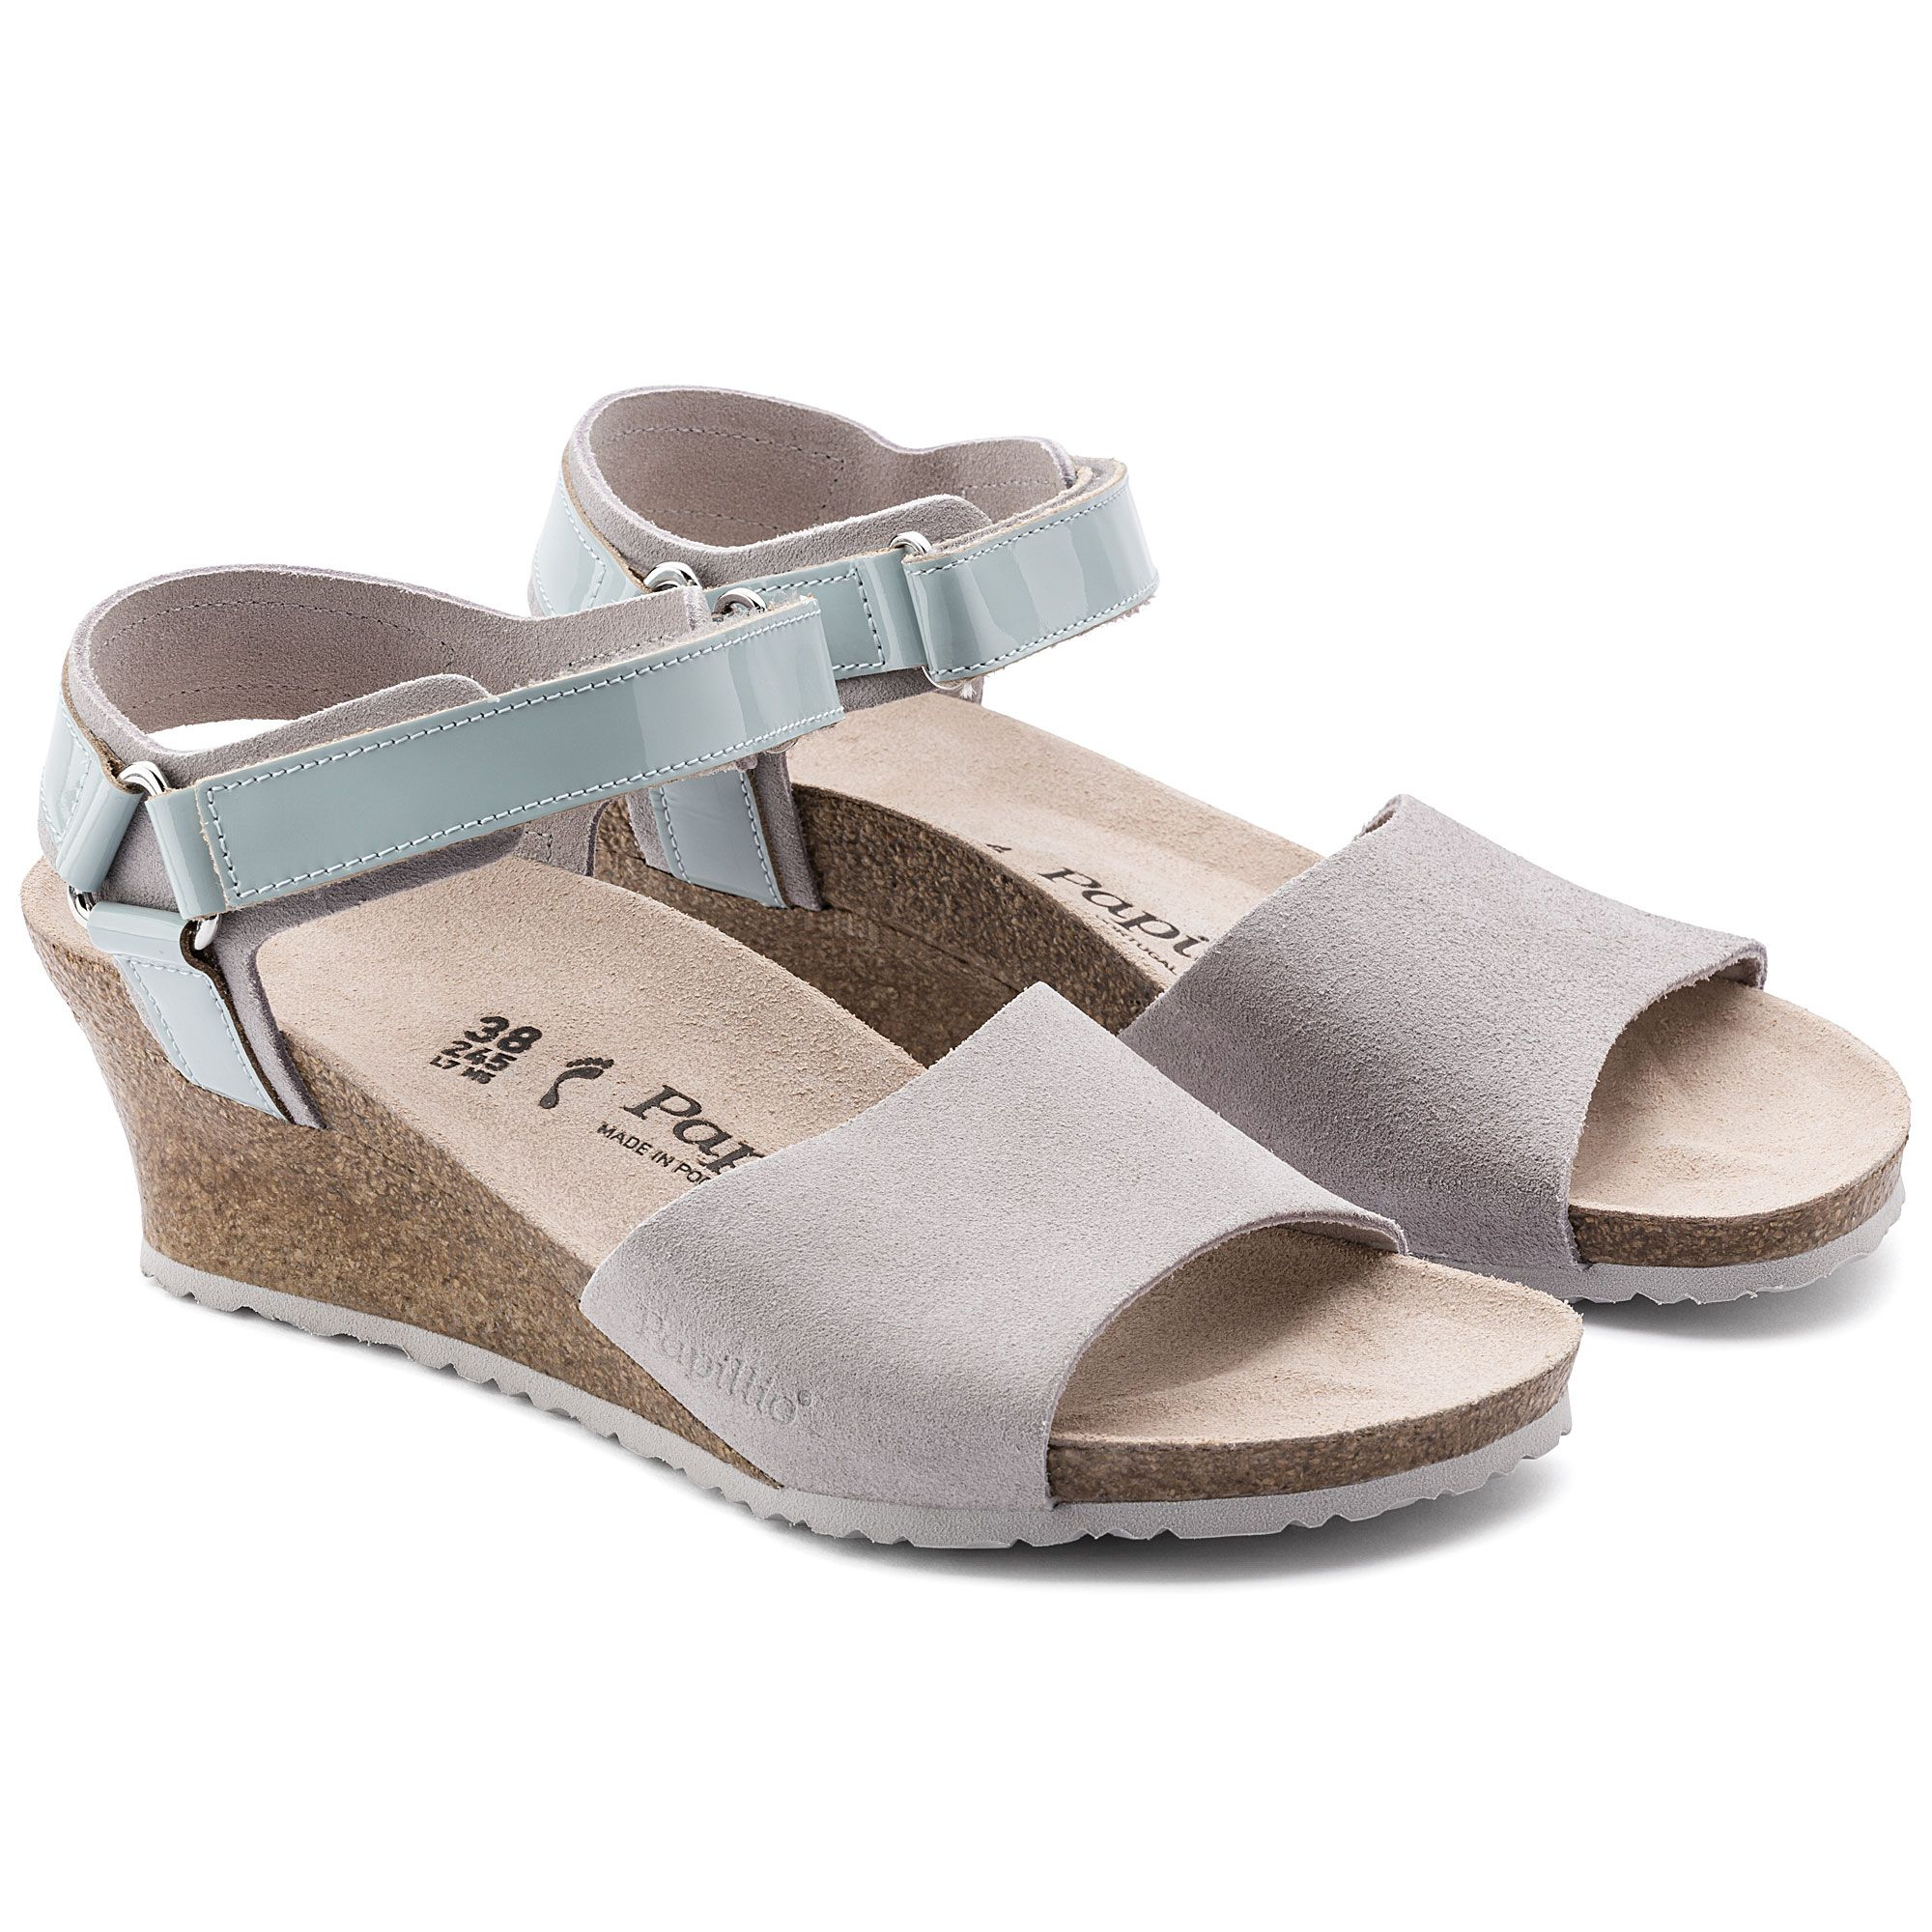 488a50c64c3 Eve Suede Leather PVC Gray